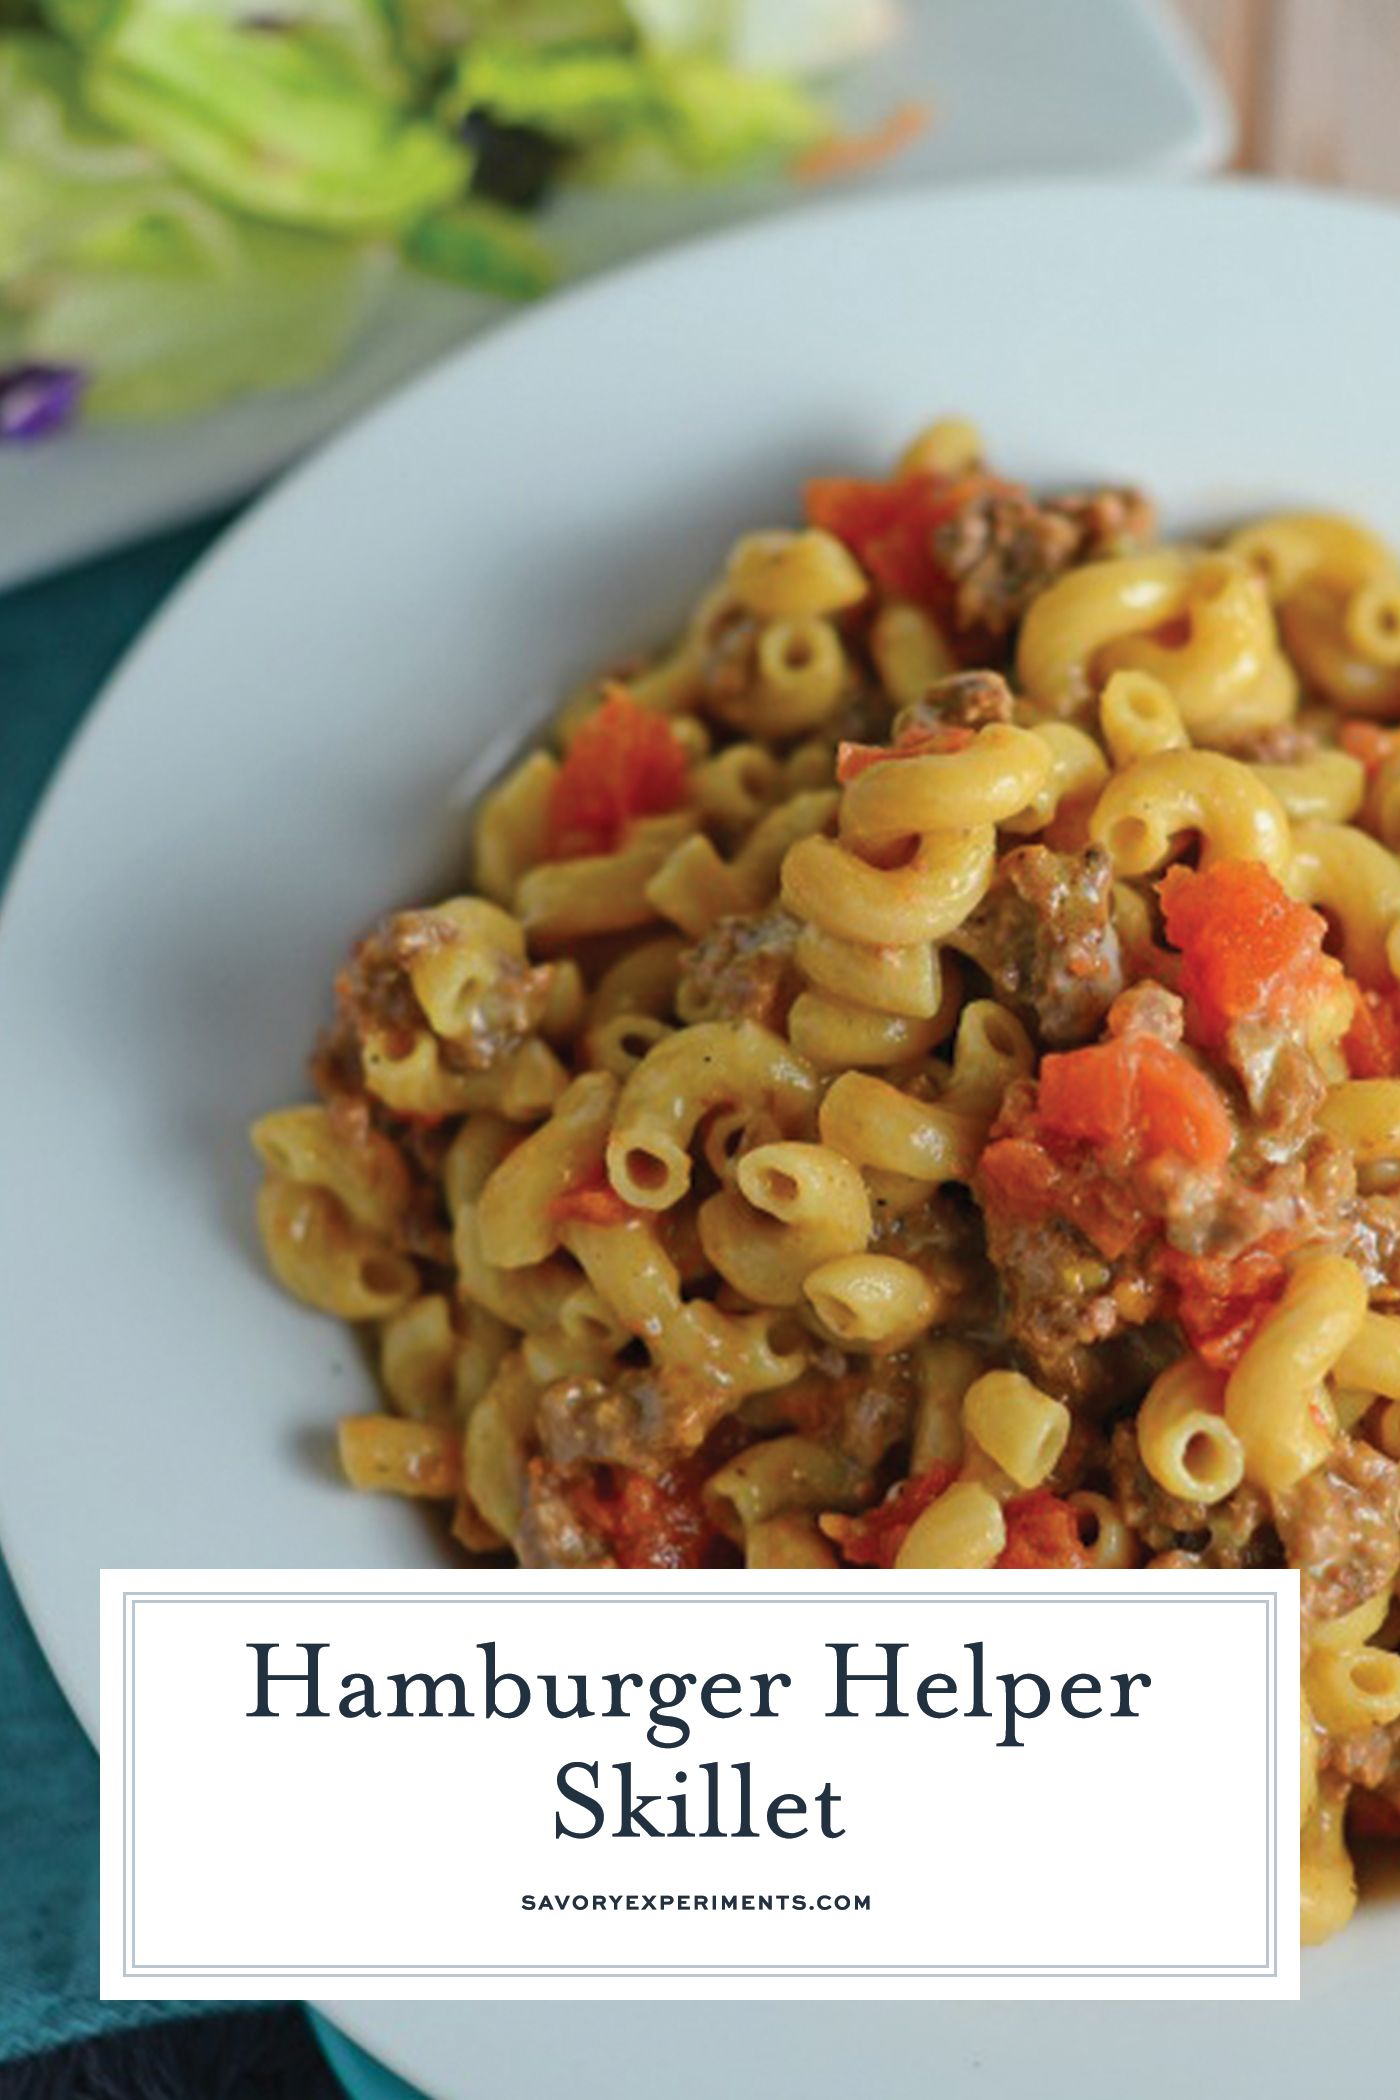 Homemade Hamburger Helper Skillet Is A Great Ground Beef Recipe With Cheddar Cheese Seasonings And T Hamburger Helper Tomato Dishes Homemade Hamburger Helper